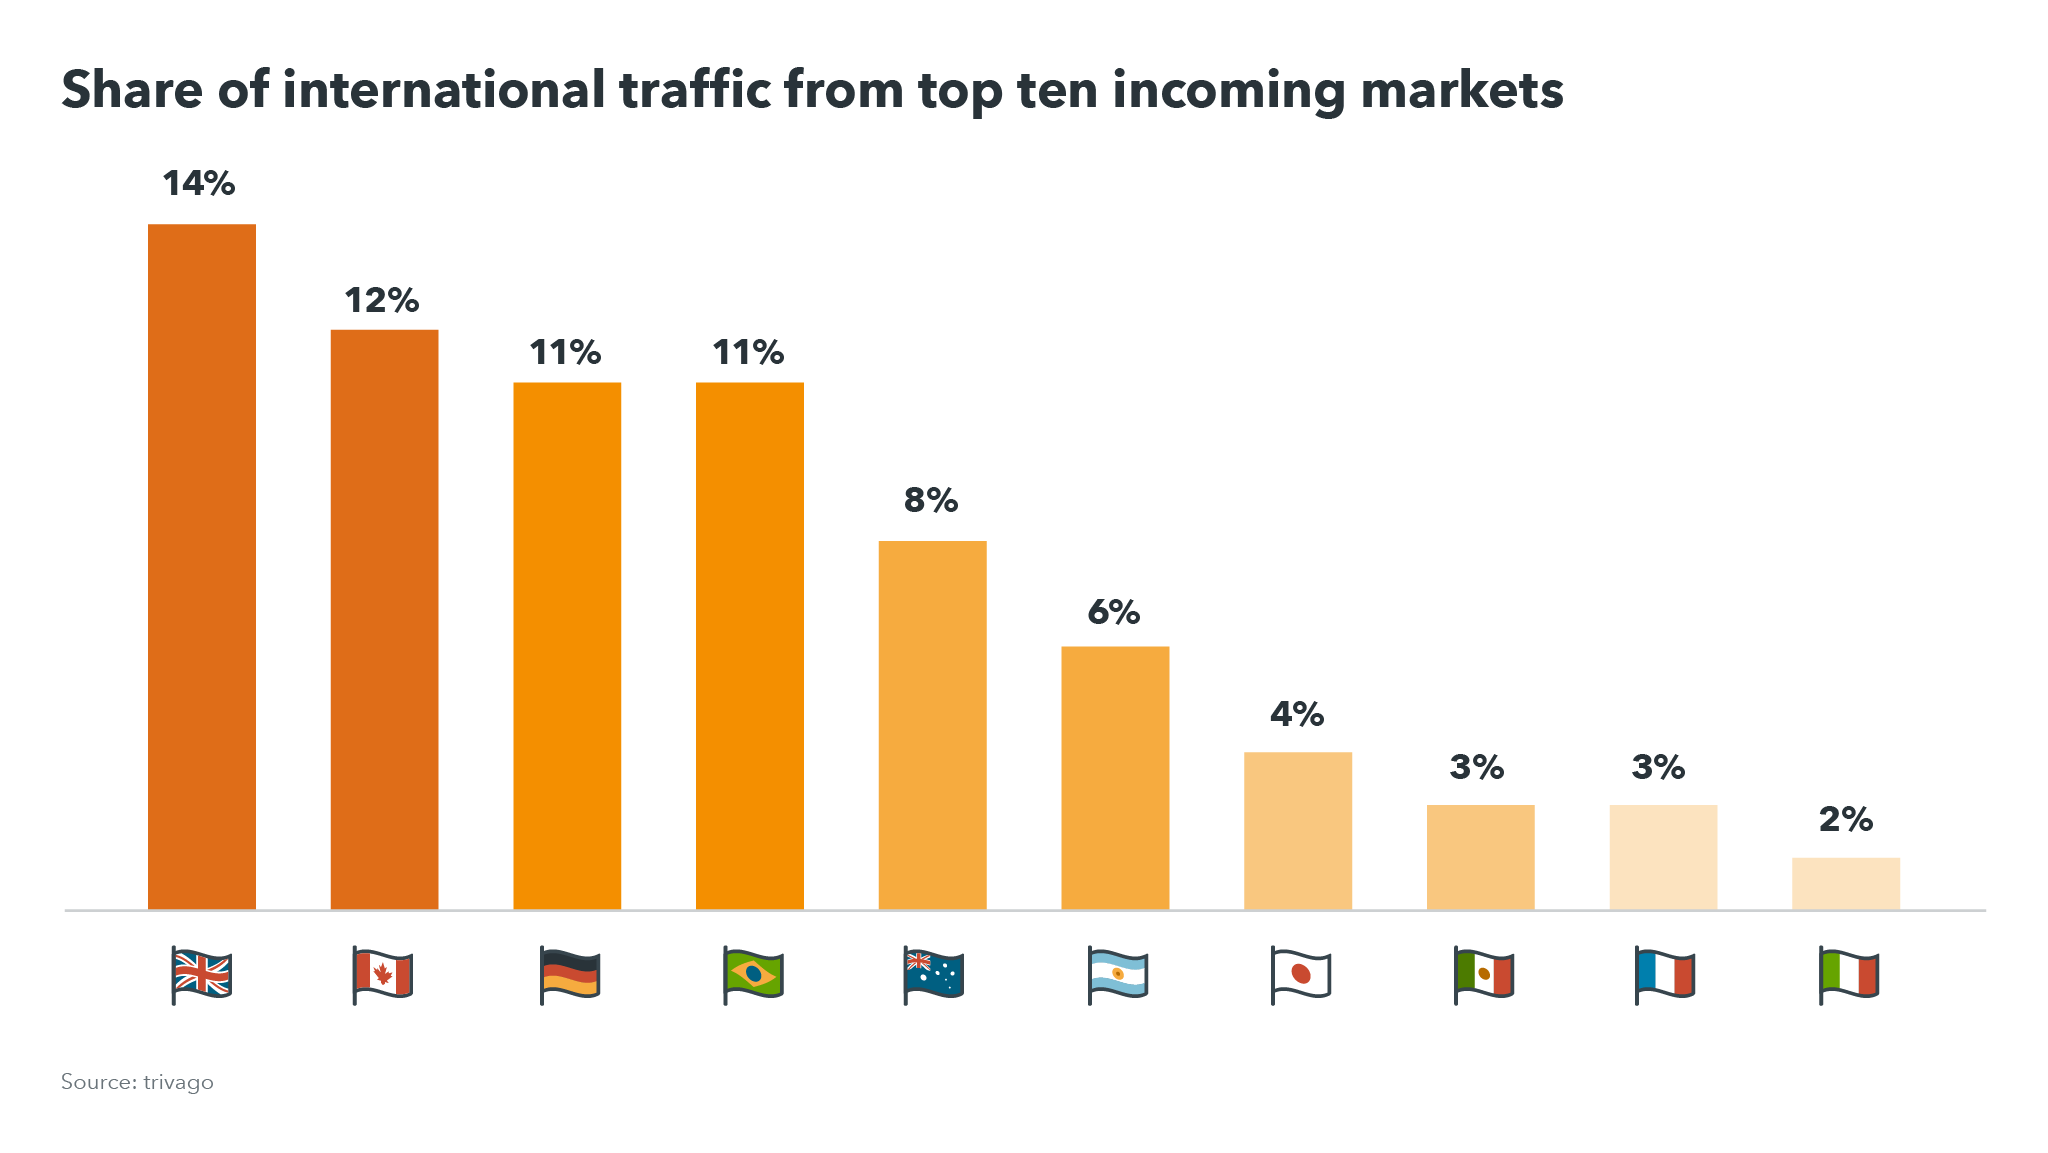 Share of international traffic from top ten incoming markets